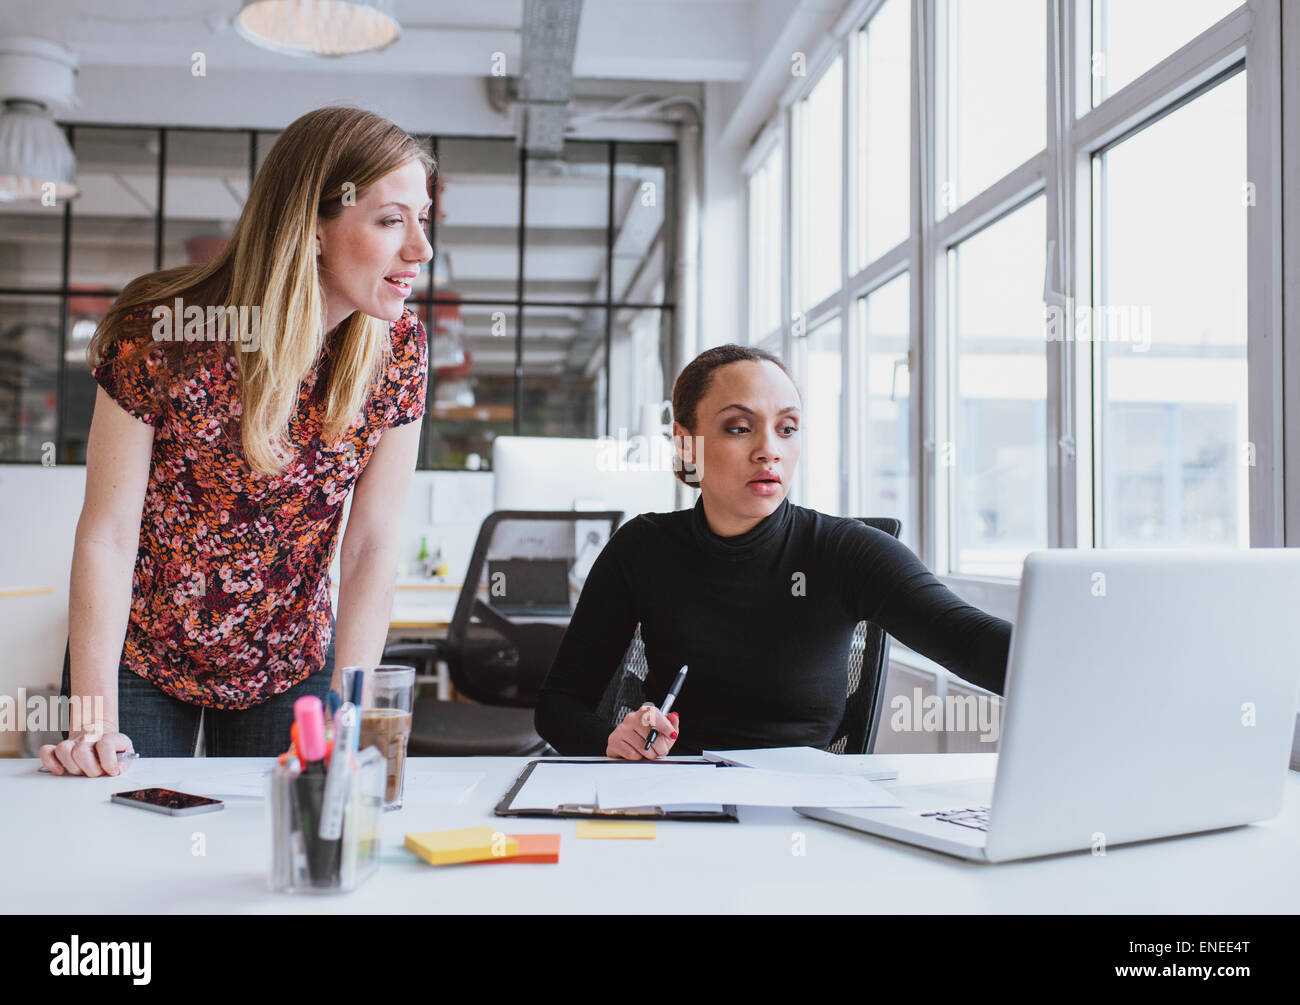 Female executives working together on new project. Creative team using laptop for information in office. - Stock Image